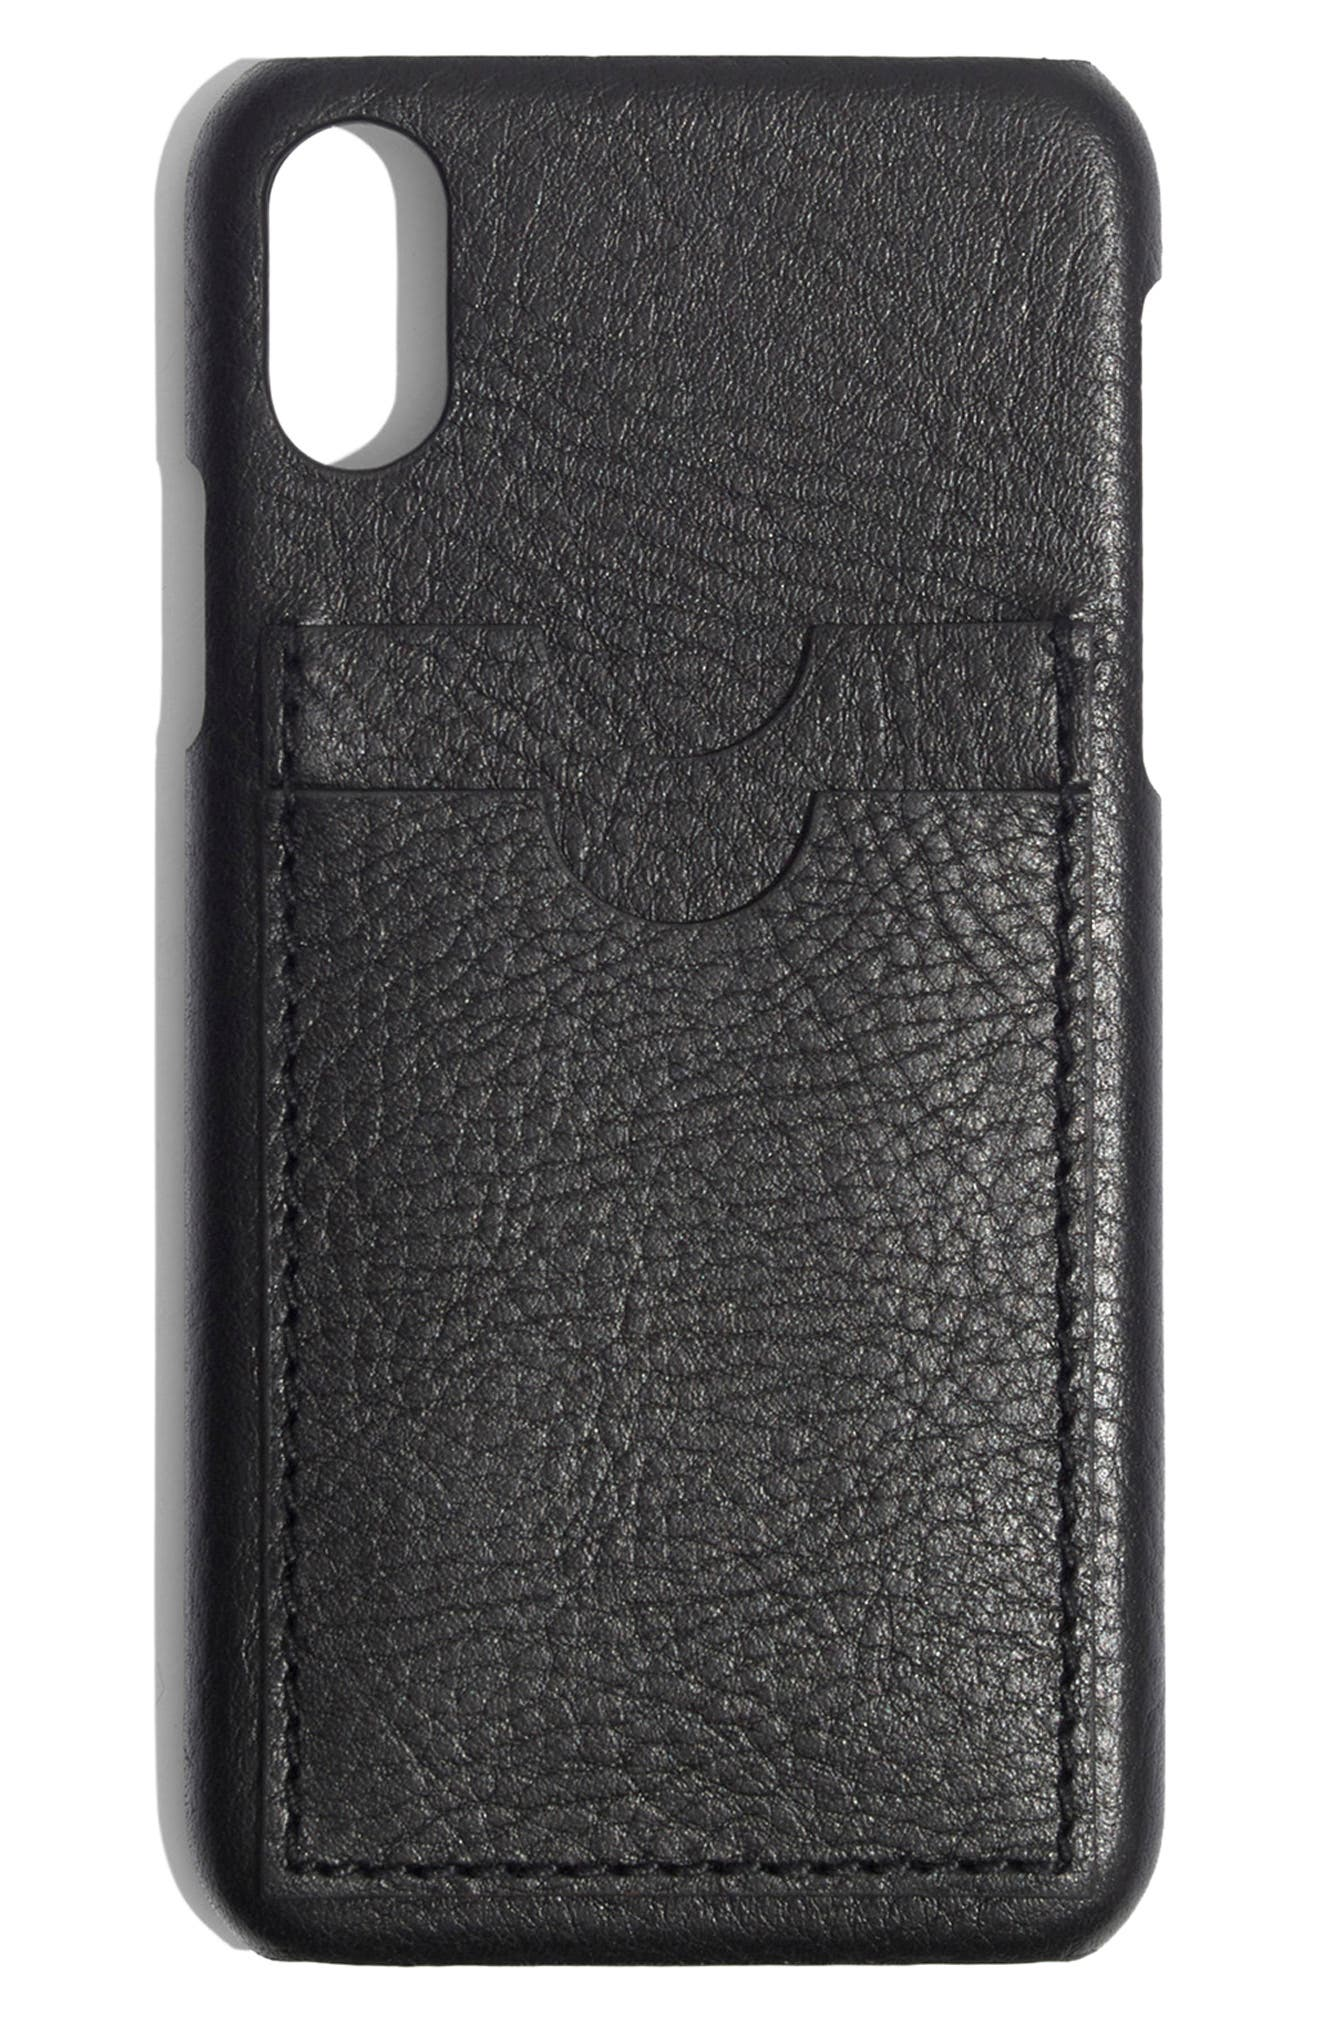 MADEWELL,                             Card Slot Leather iPhone X/Xs Case,                             Main thumbnail 1, color,                             001